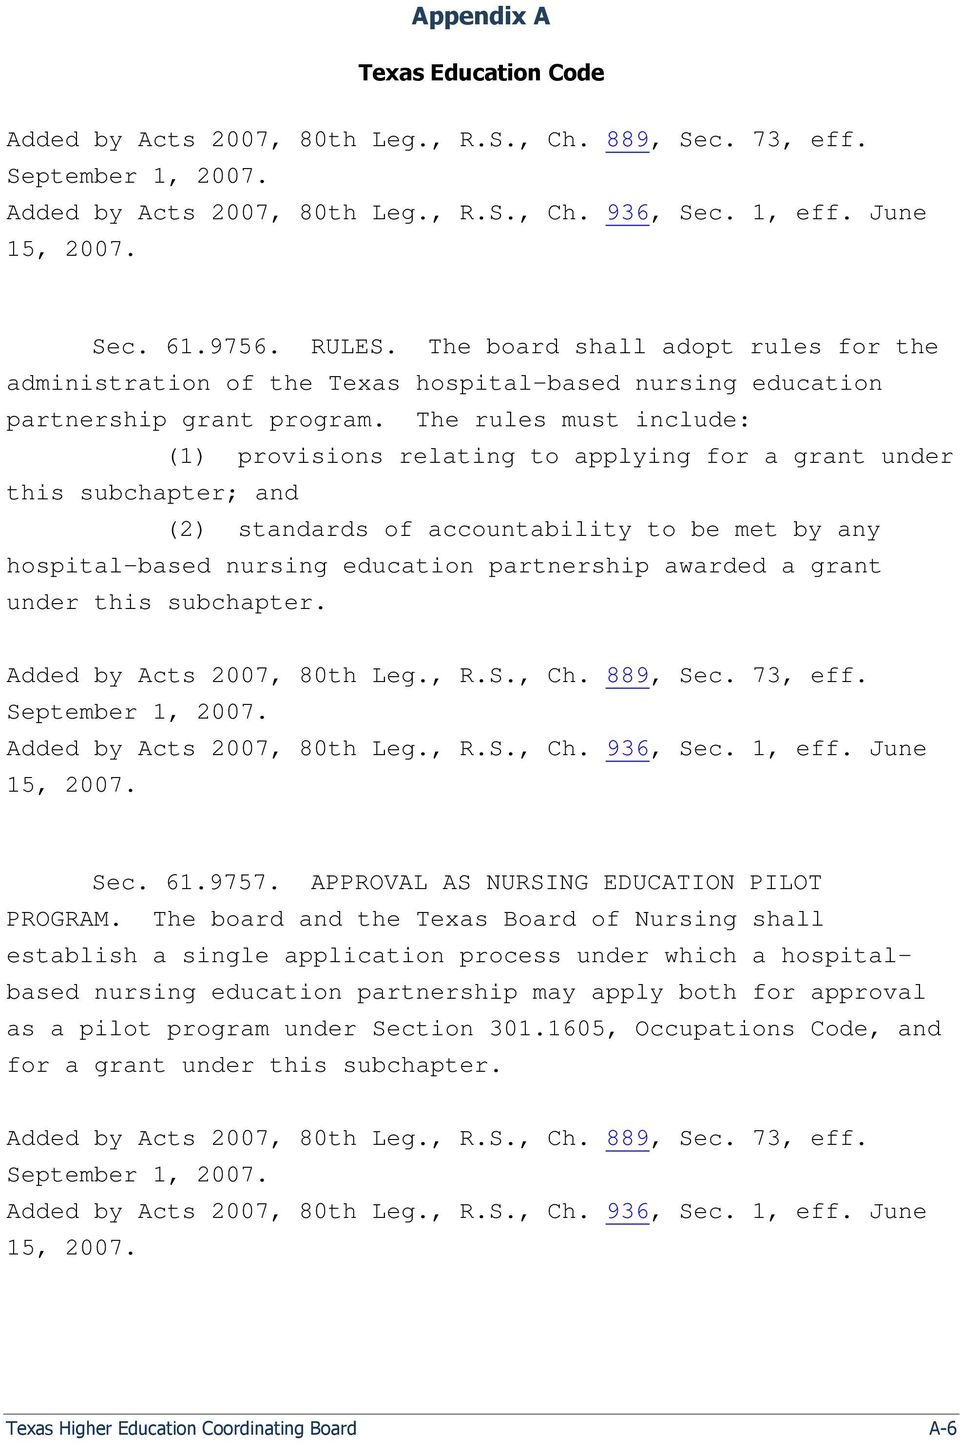 The rules must include: (1) provisions relating to applying for a grant under this subchapter; and (2) standards of accountability to be met by any hospital-based nursing education partnership